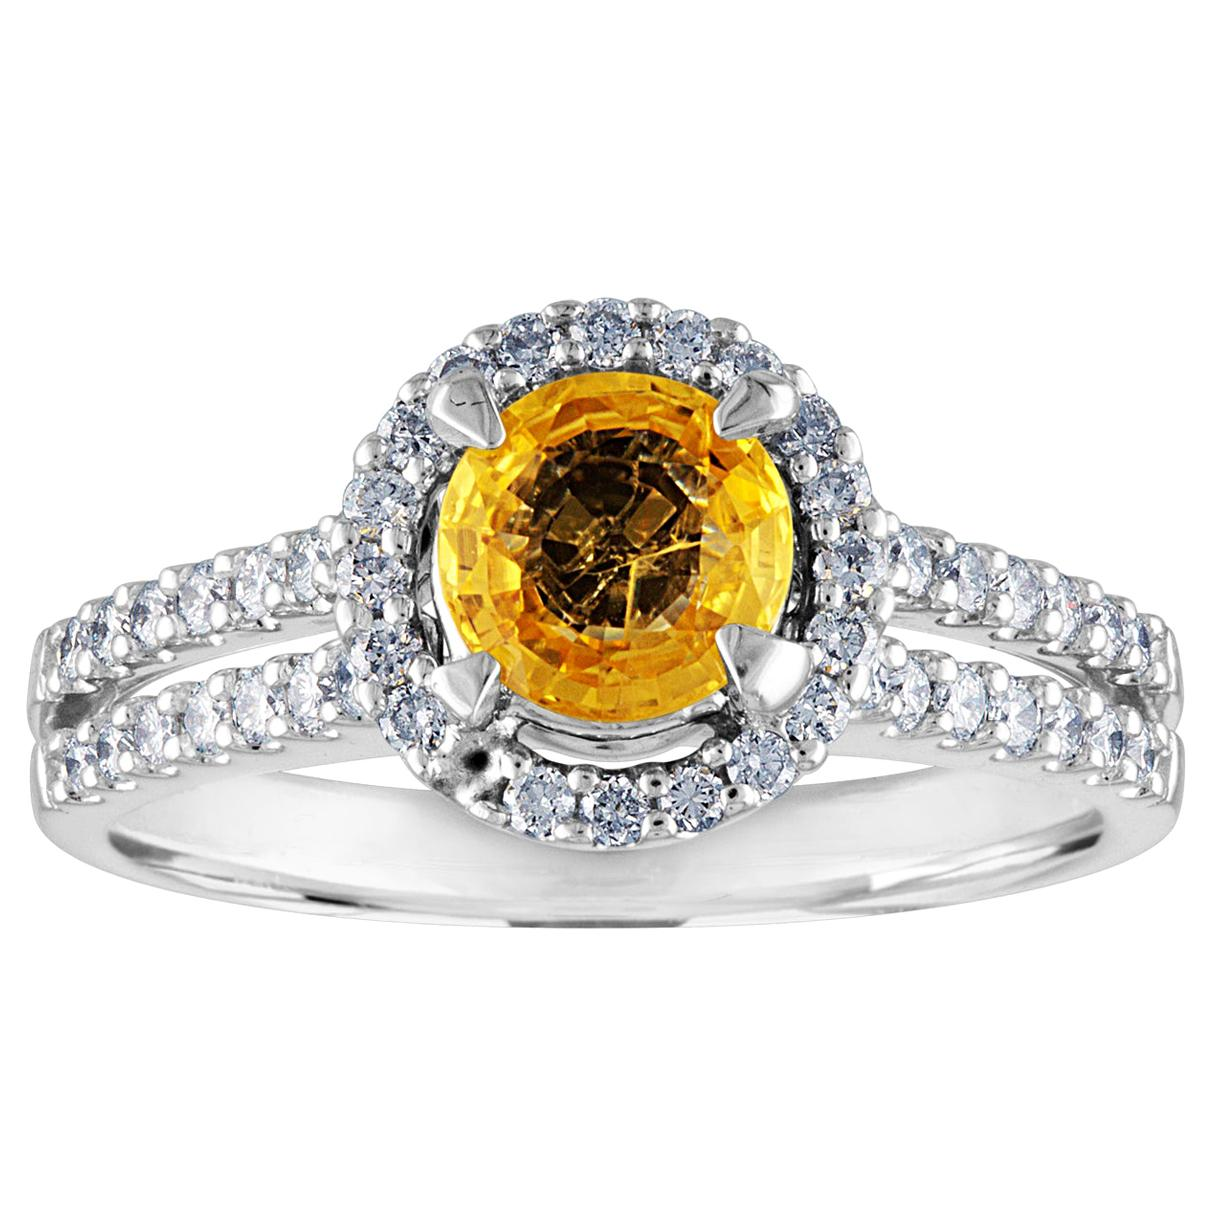 AGL Certified 0.84 Carat Round Yellow Sapphire Diamond Gold Ring